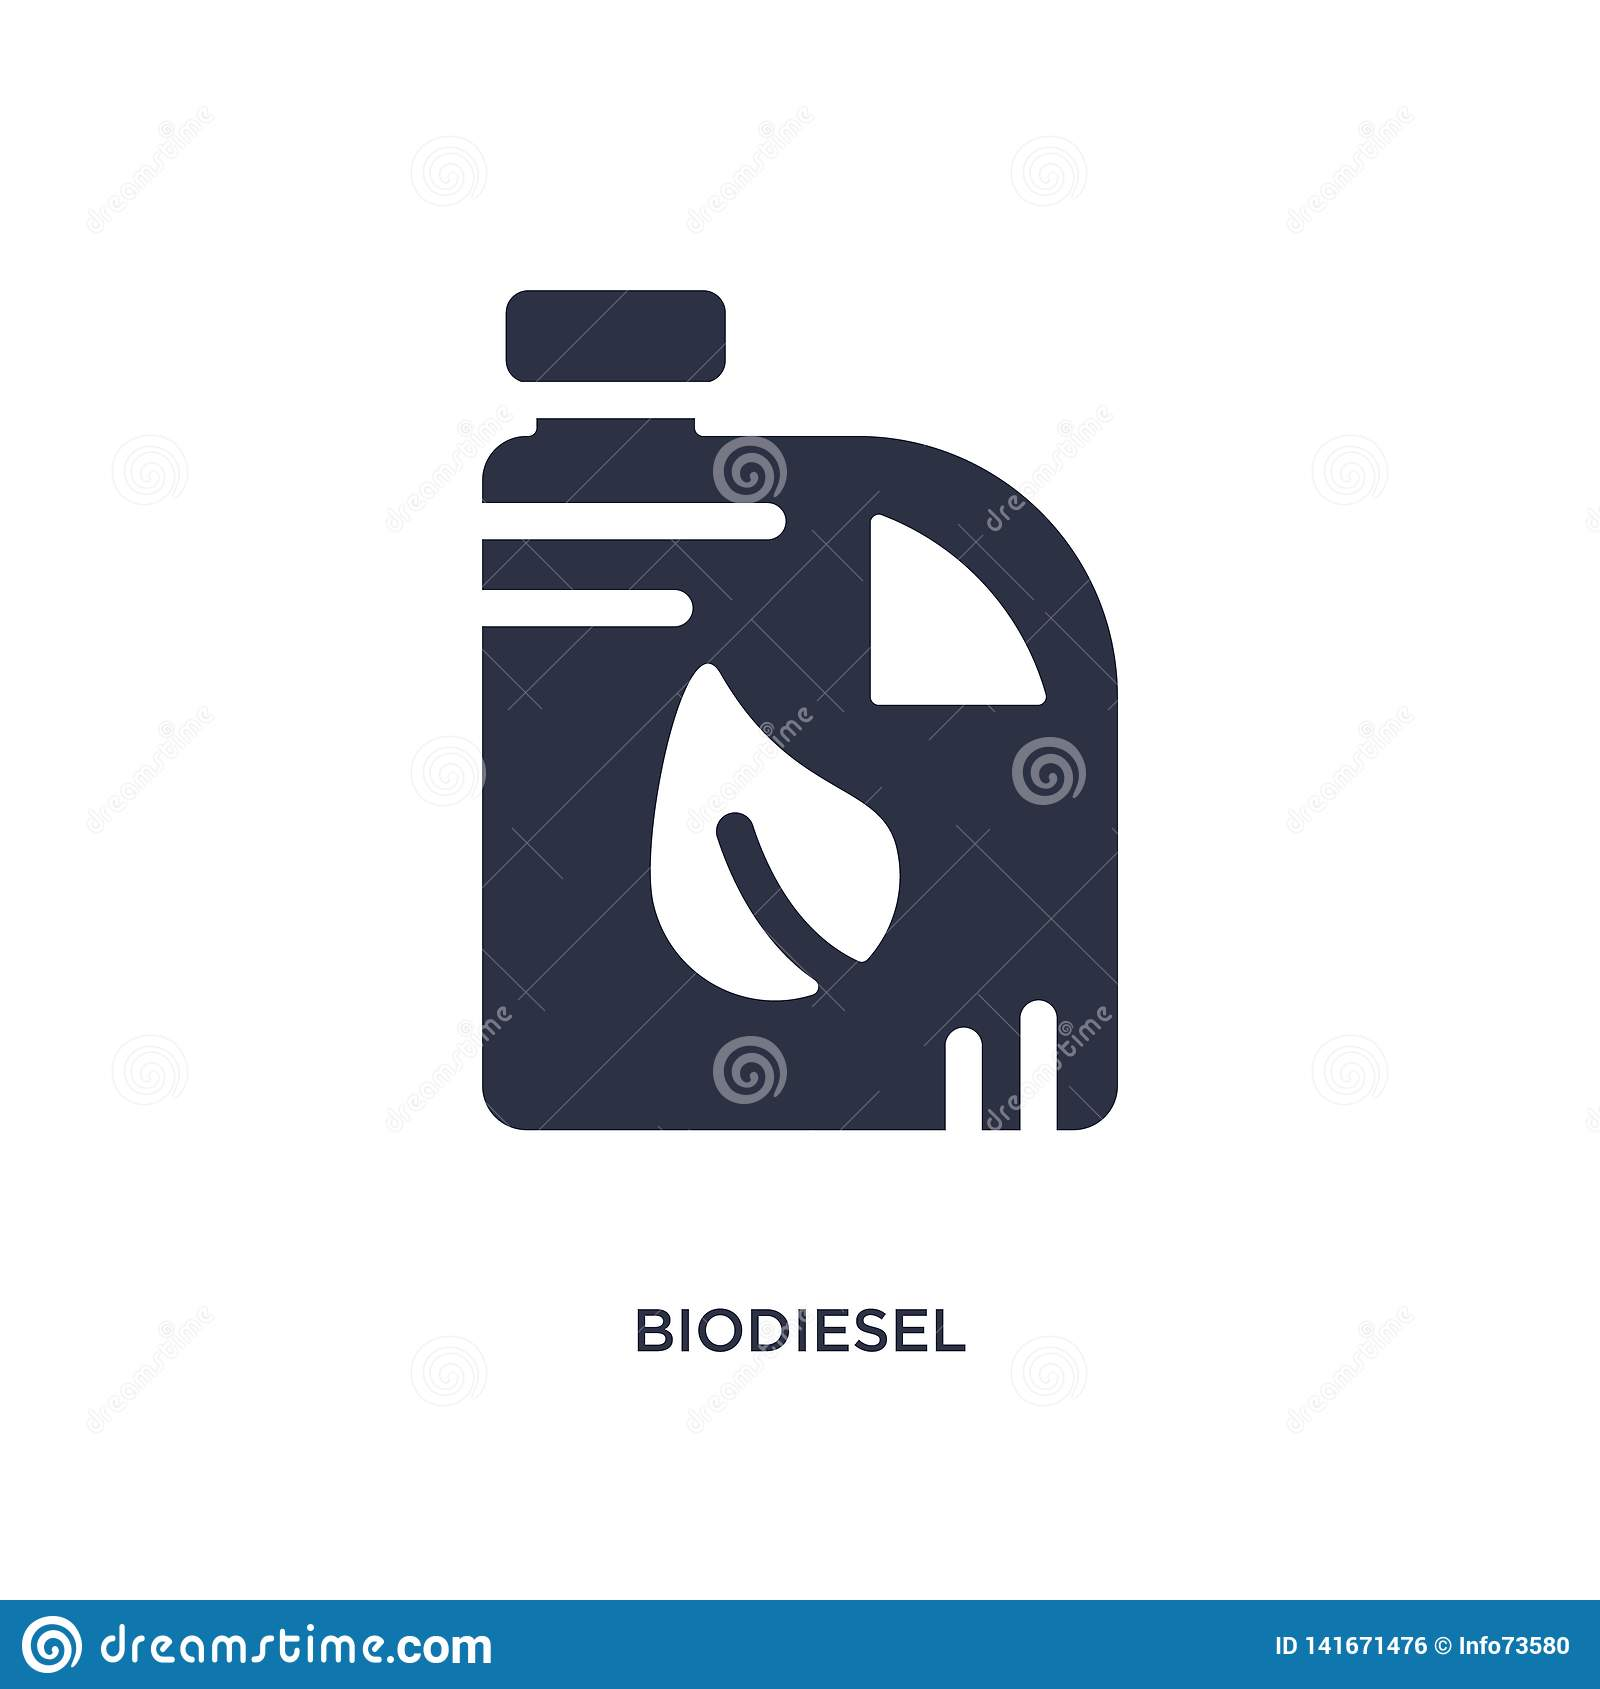 biodiesel icon on white background. Simple element illustration from ecology concept